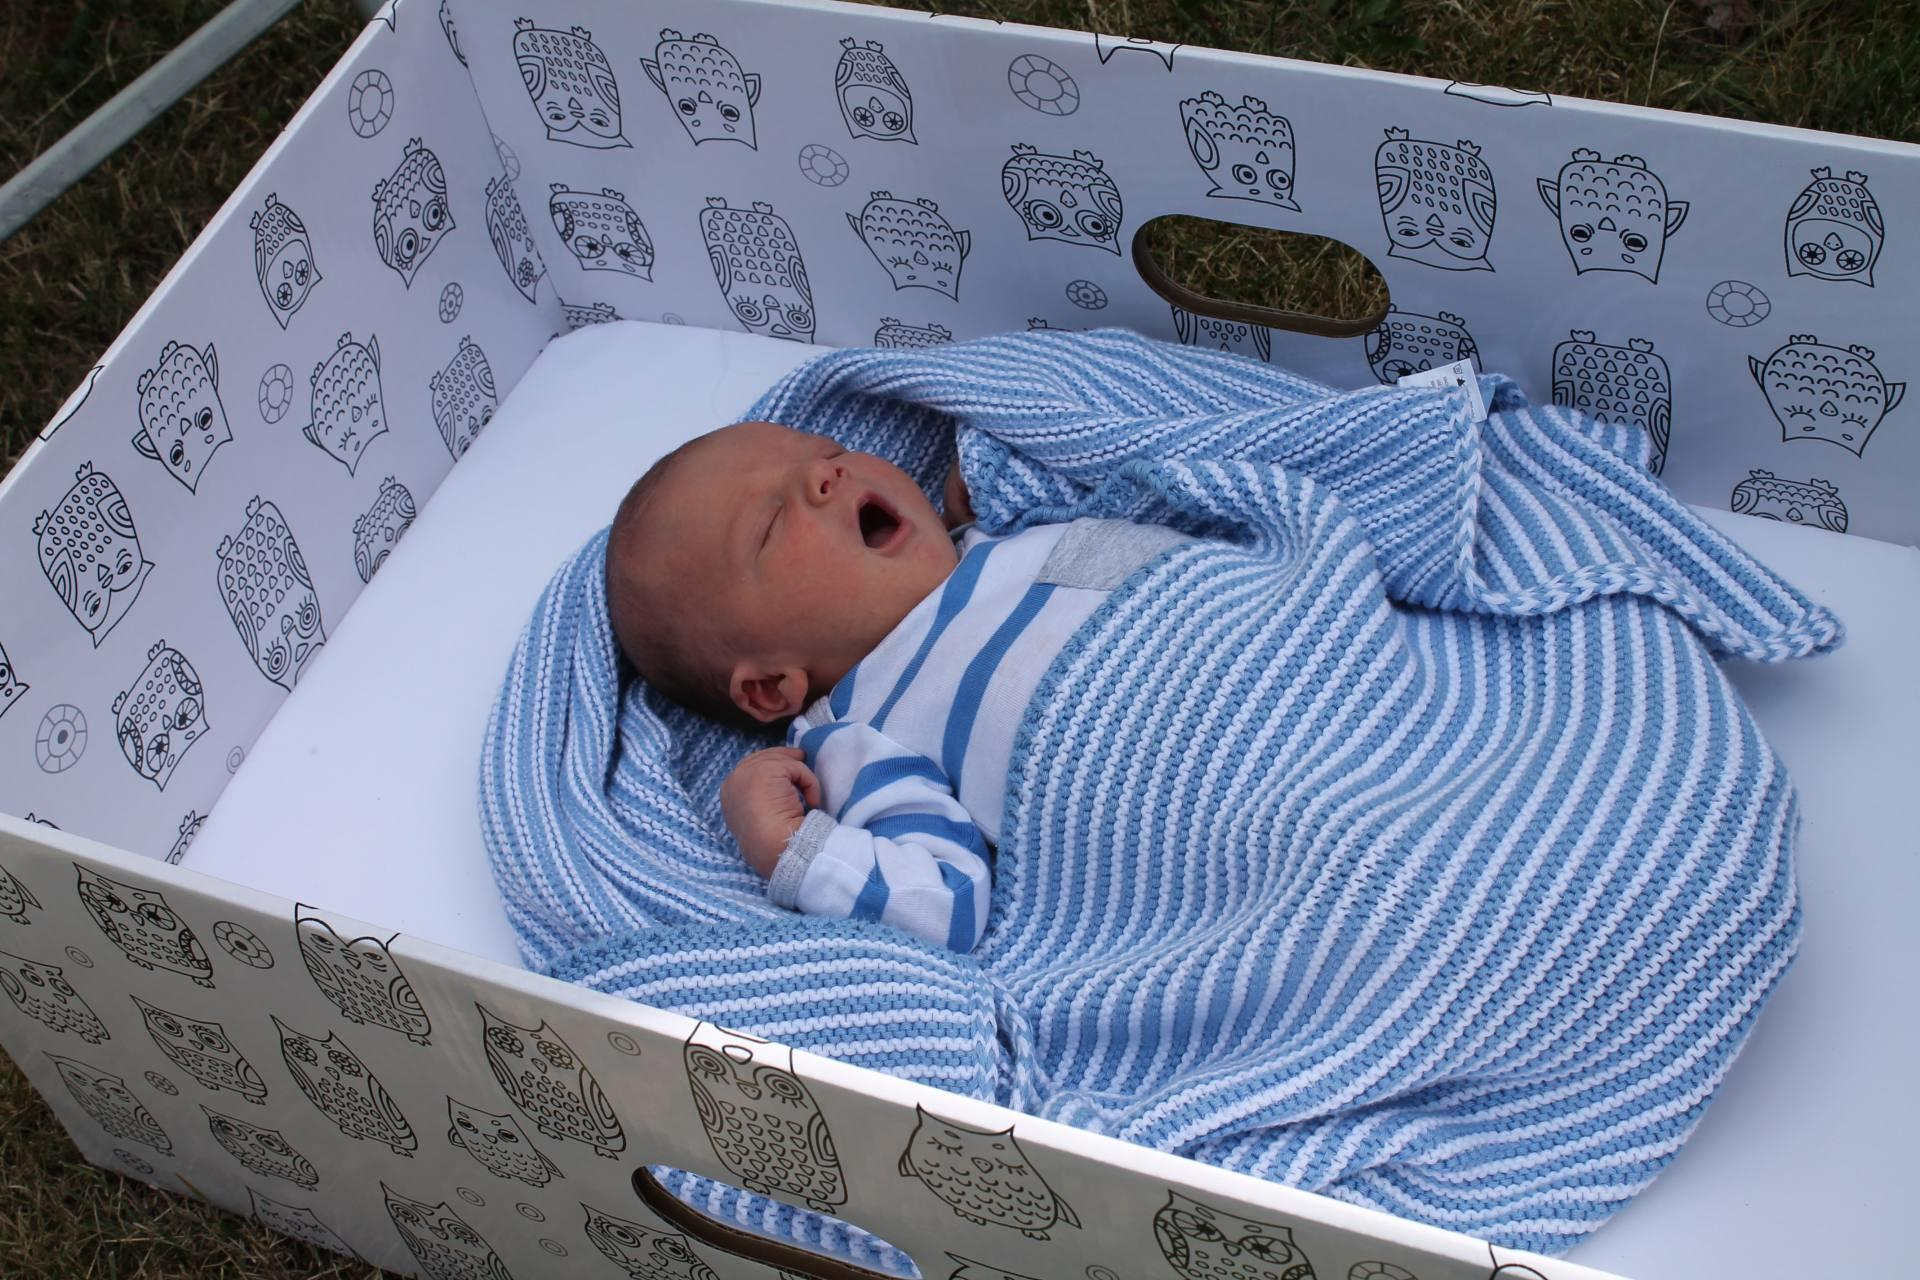 The Baby Box, IMG 1082%, new-dad%